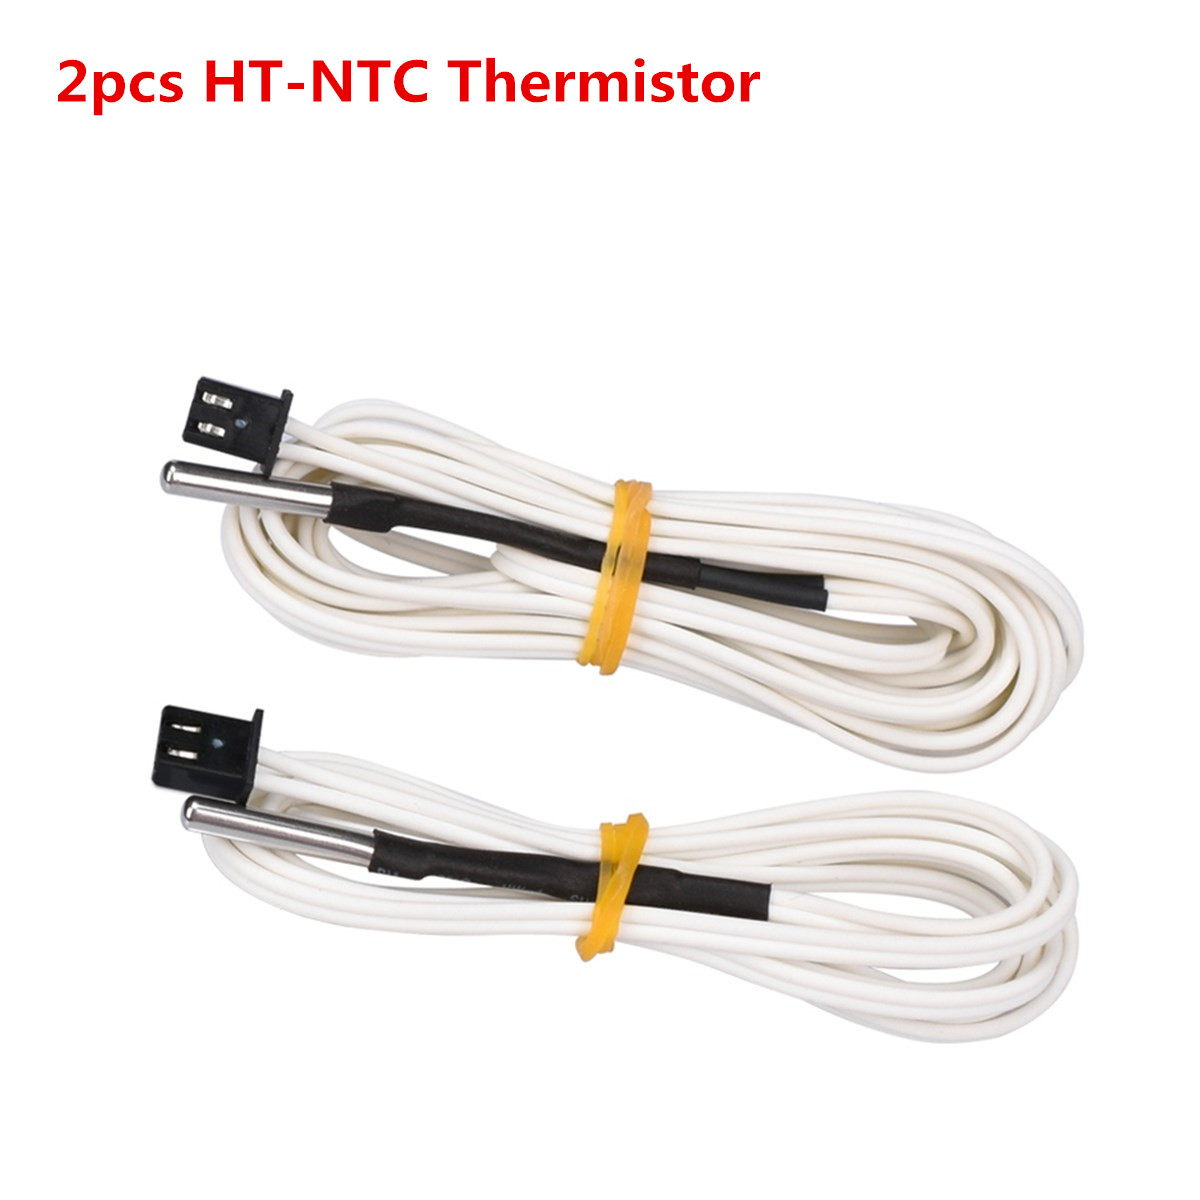 2pcs NTC 100k 3d Printer Heater Resistance B3950 Temperature Sensor Hotend Probe Thermistor HT-NTC100K Feeler Pin Temp Needle